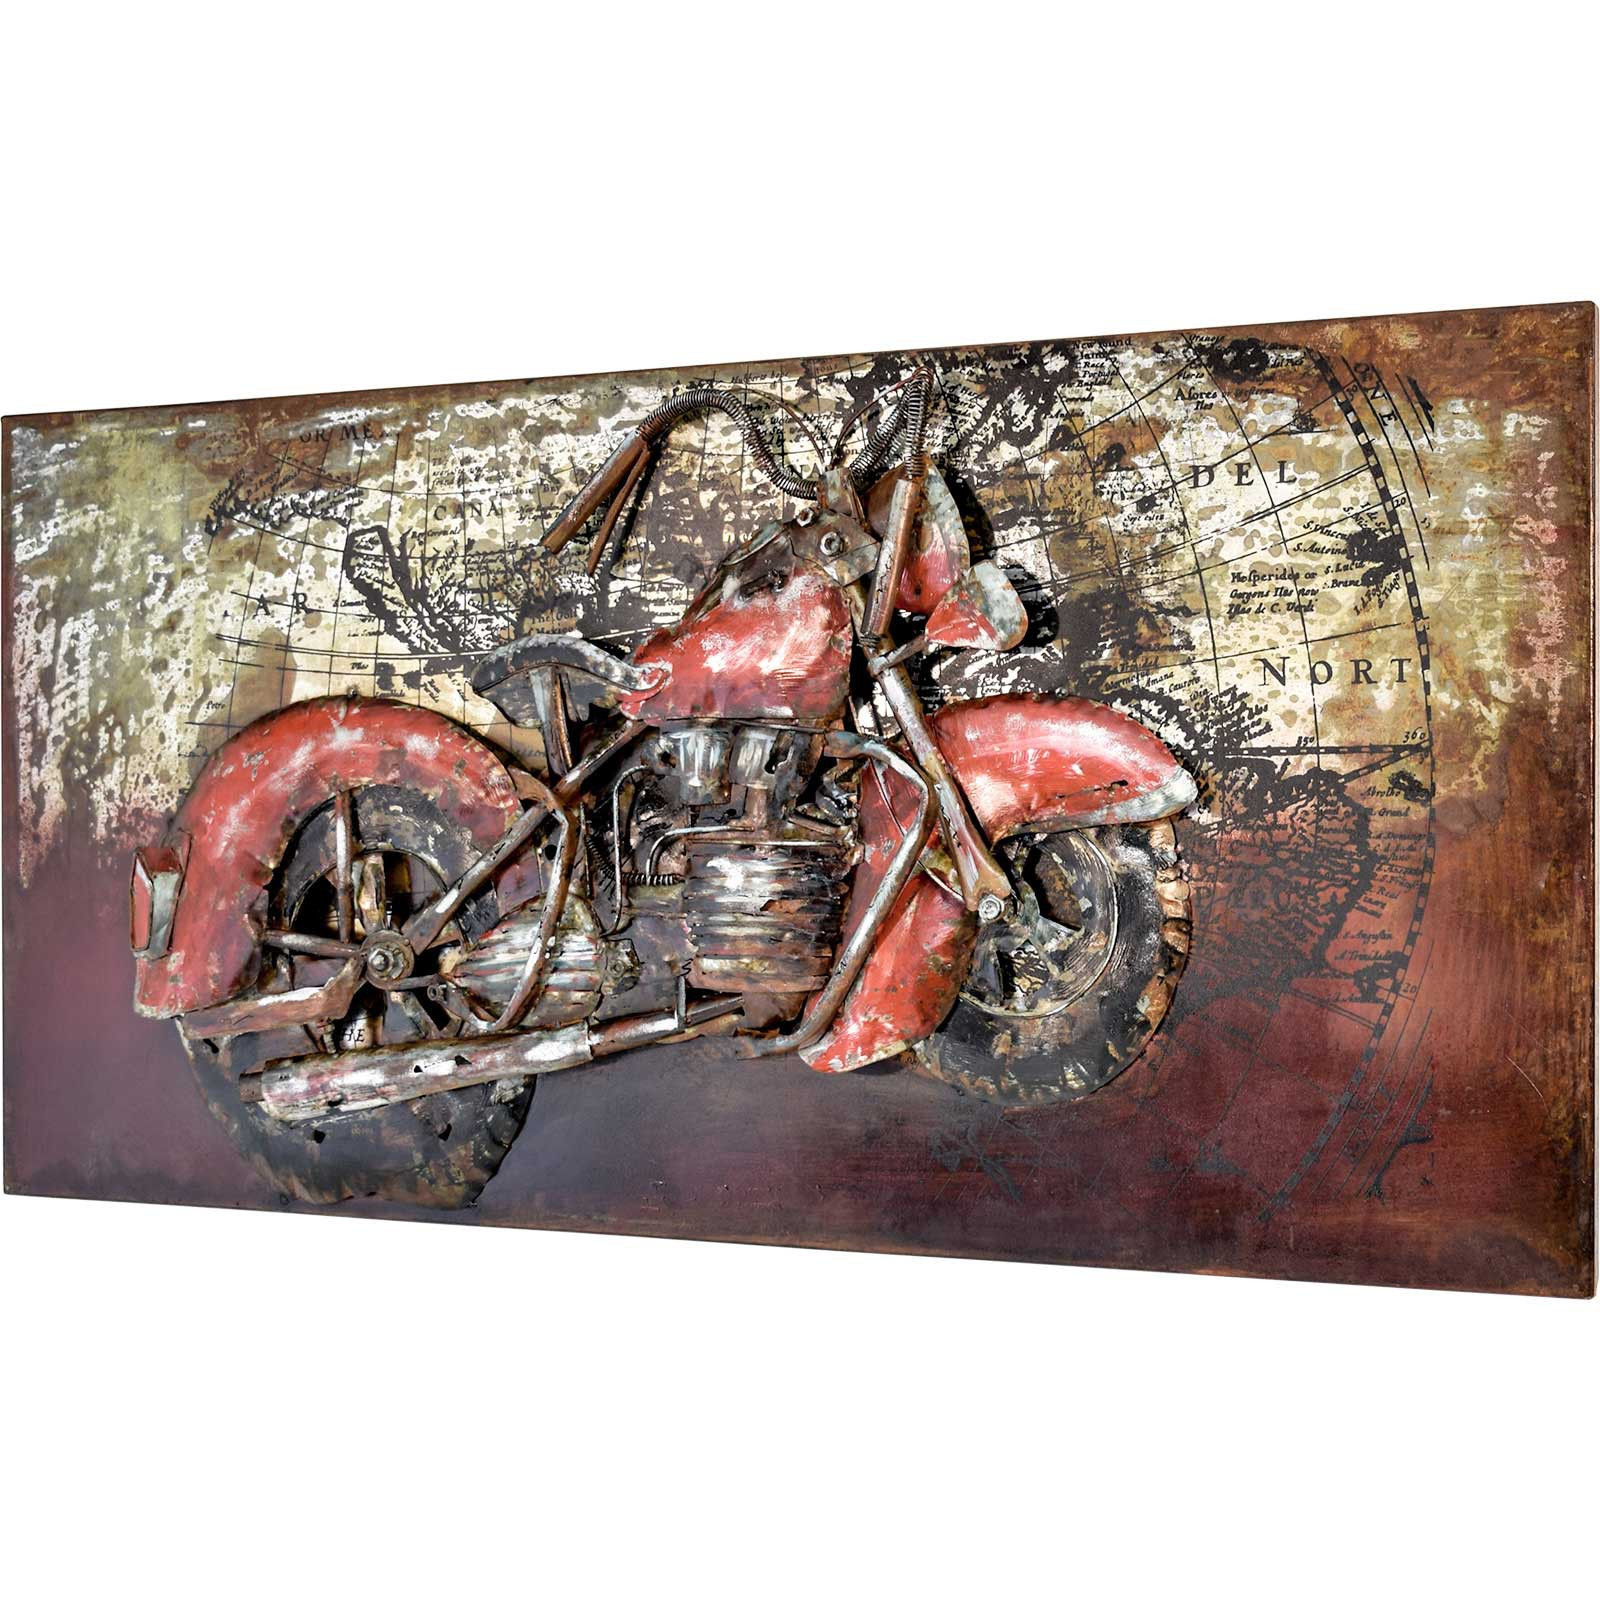 metallbild-motiv-chopper.jpg